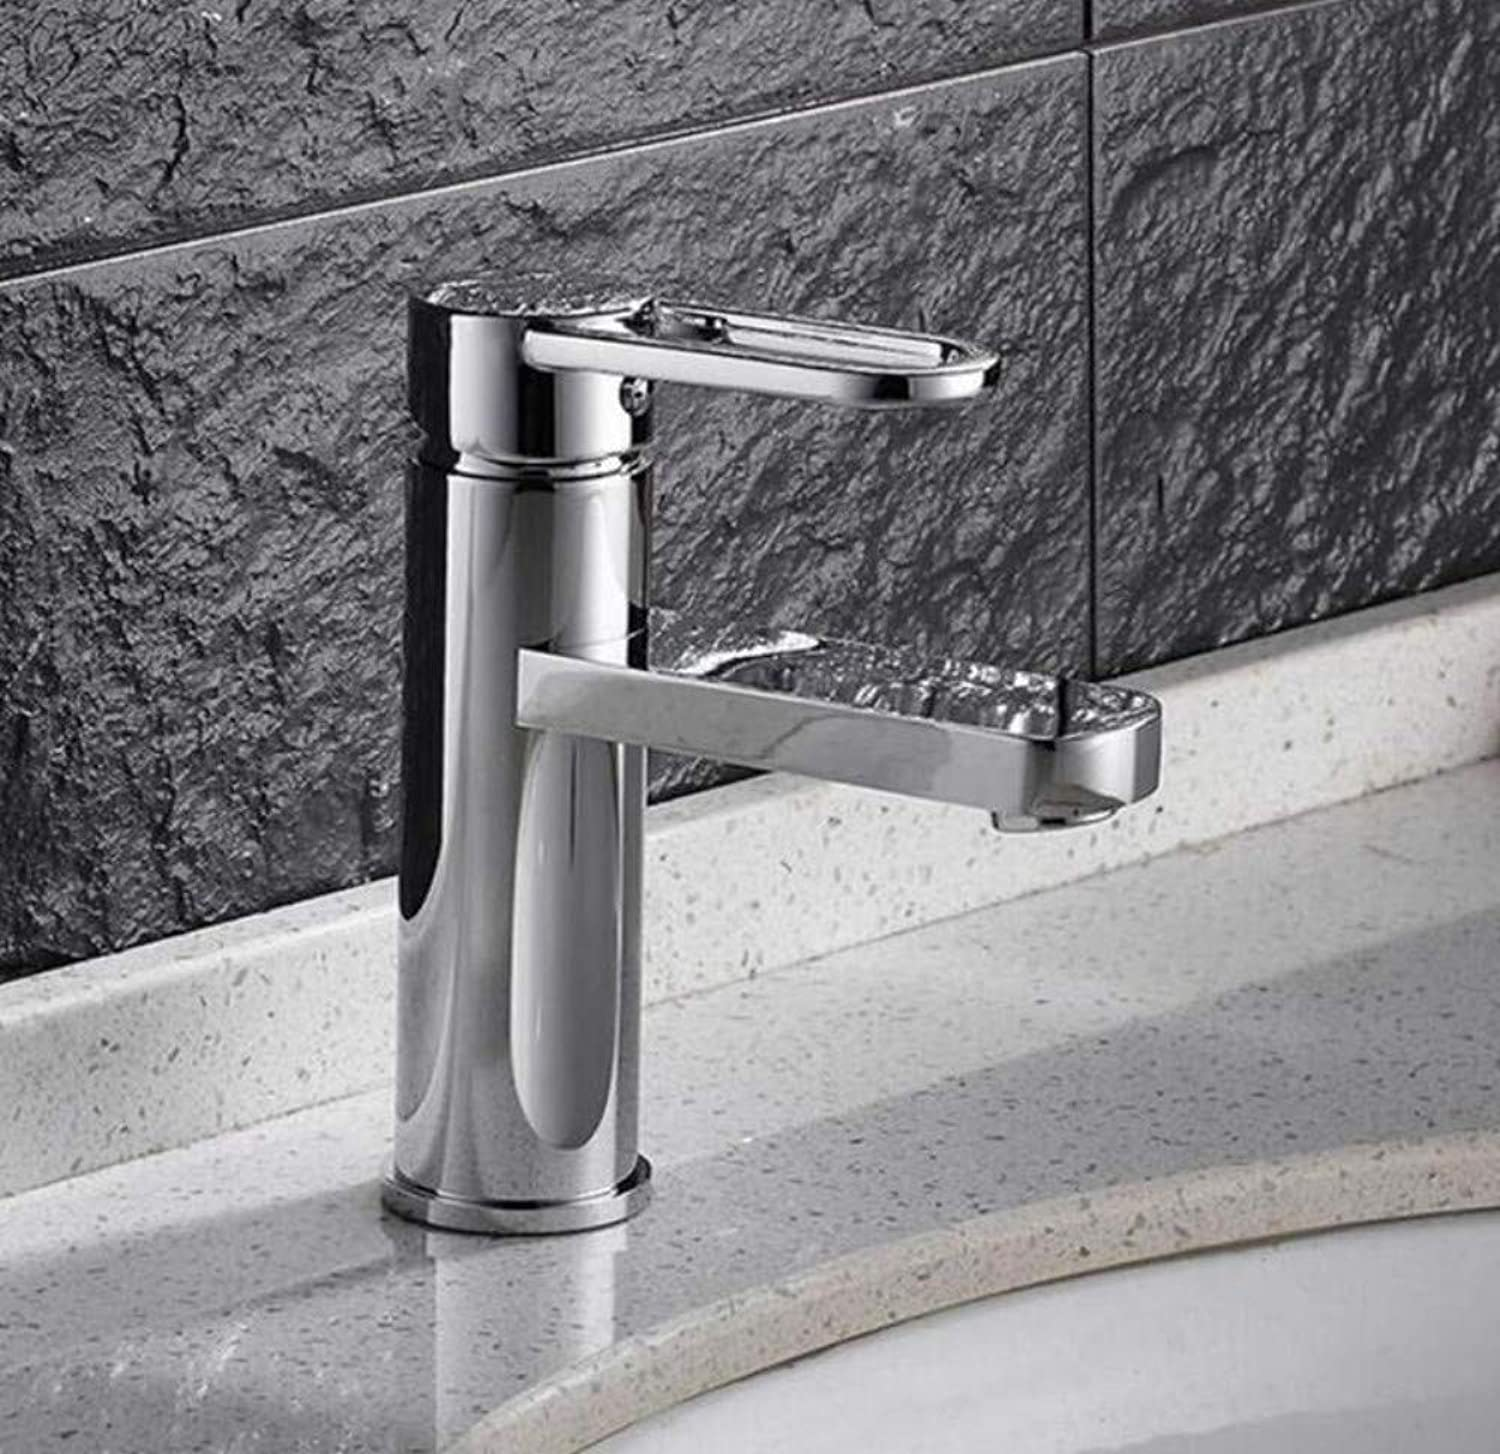 Brass Wall Faucet Chrome Brass Faucettap Chrome Single Lever Hot and Cold Bathroom Basin Sink Mixer